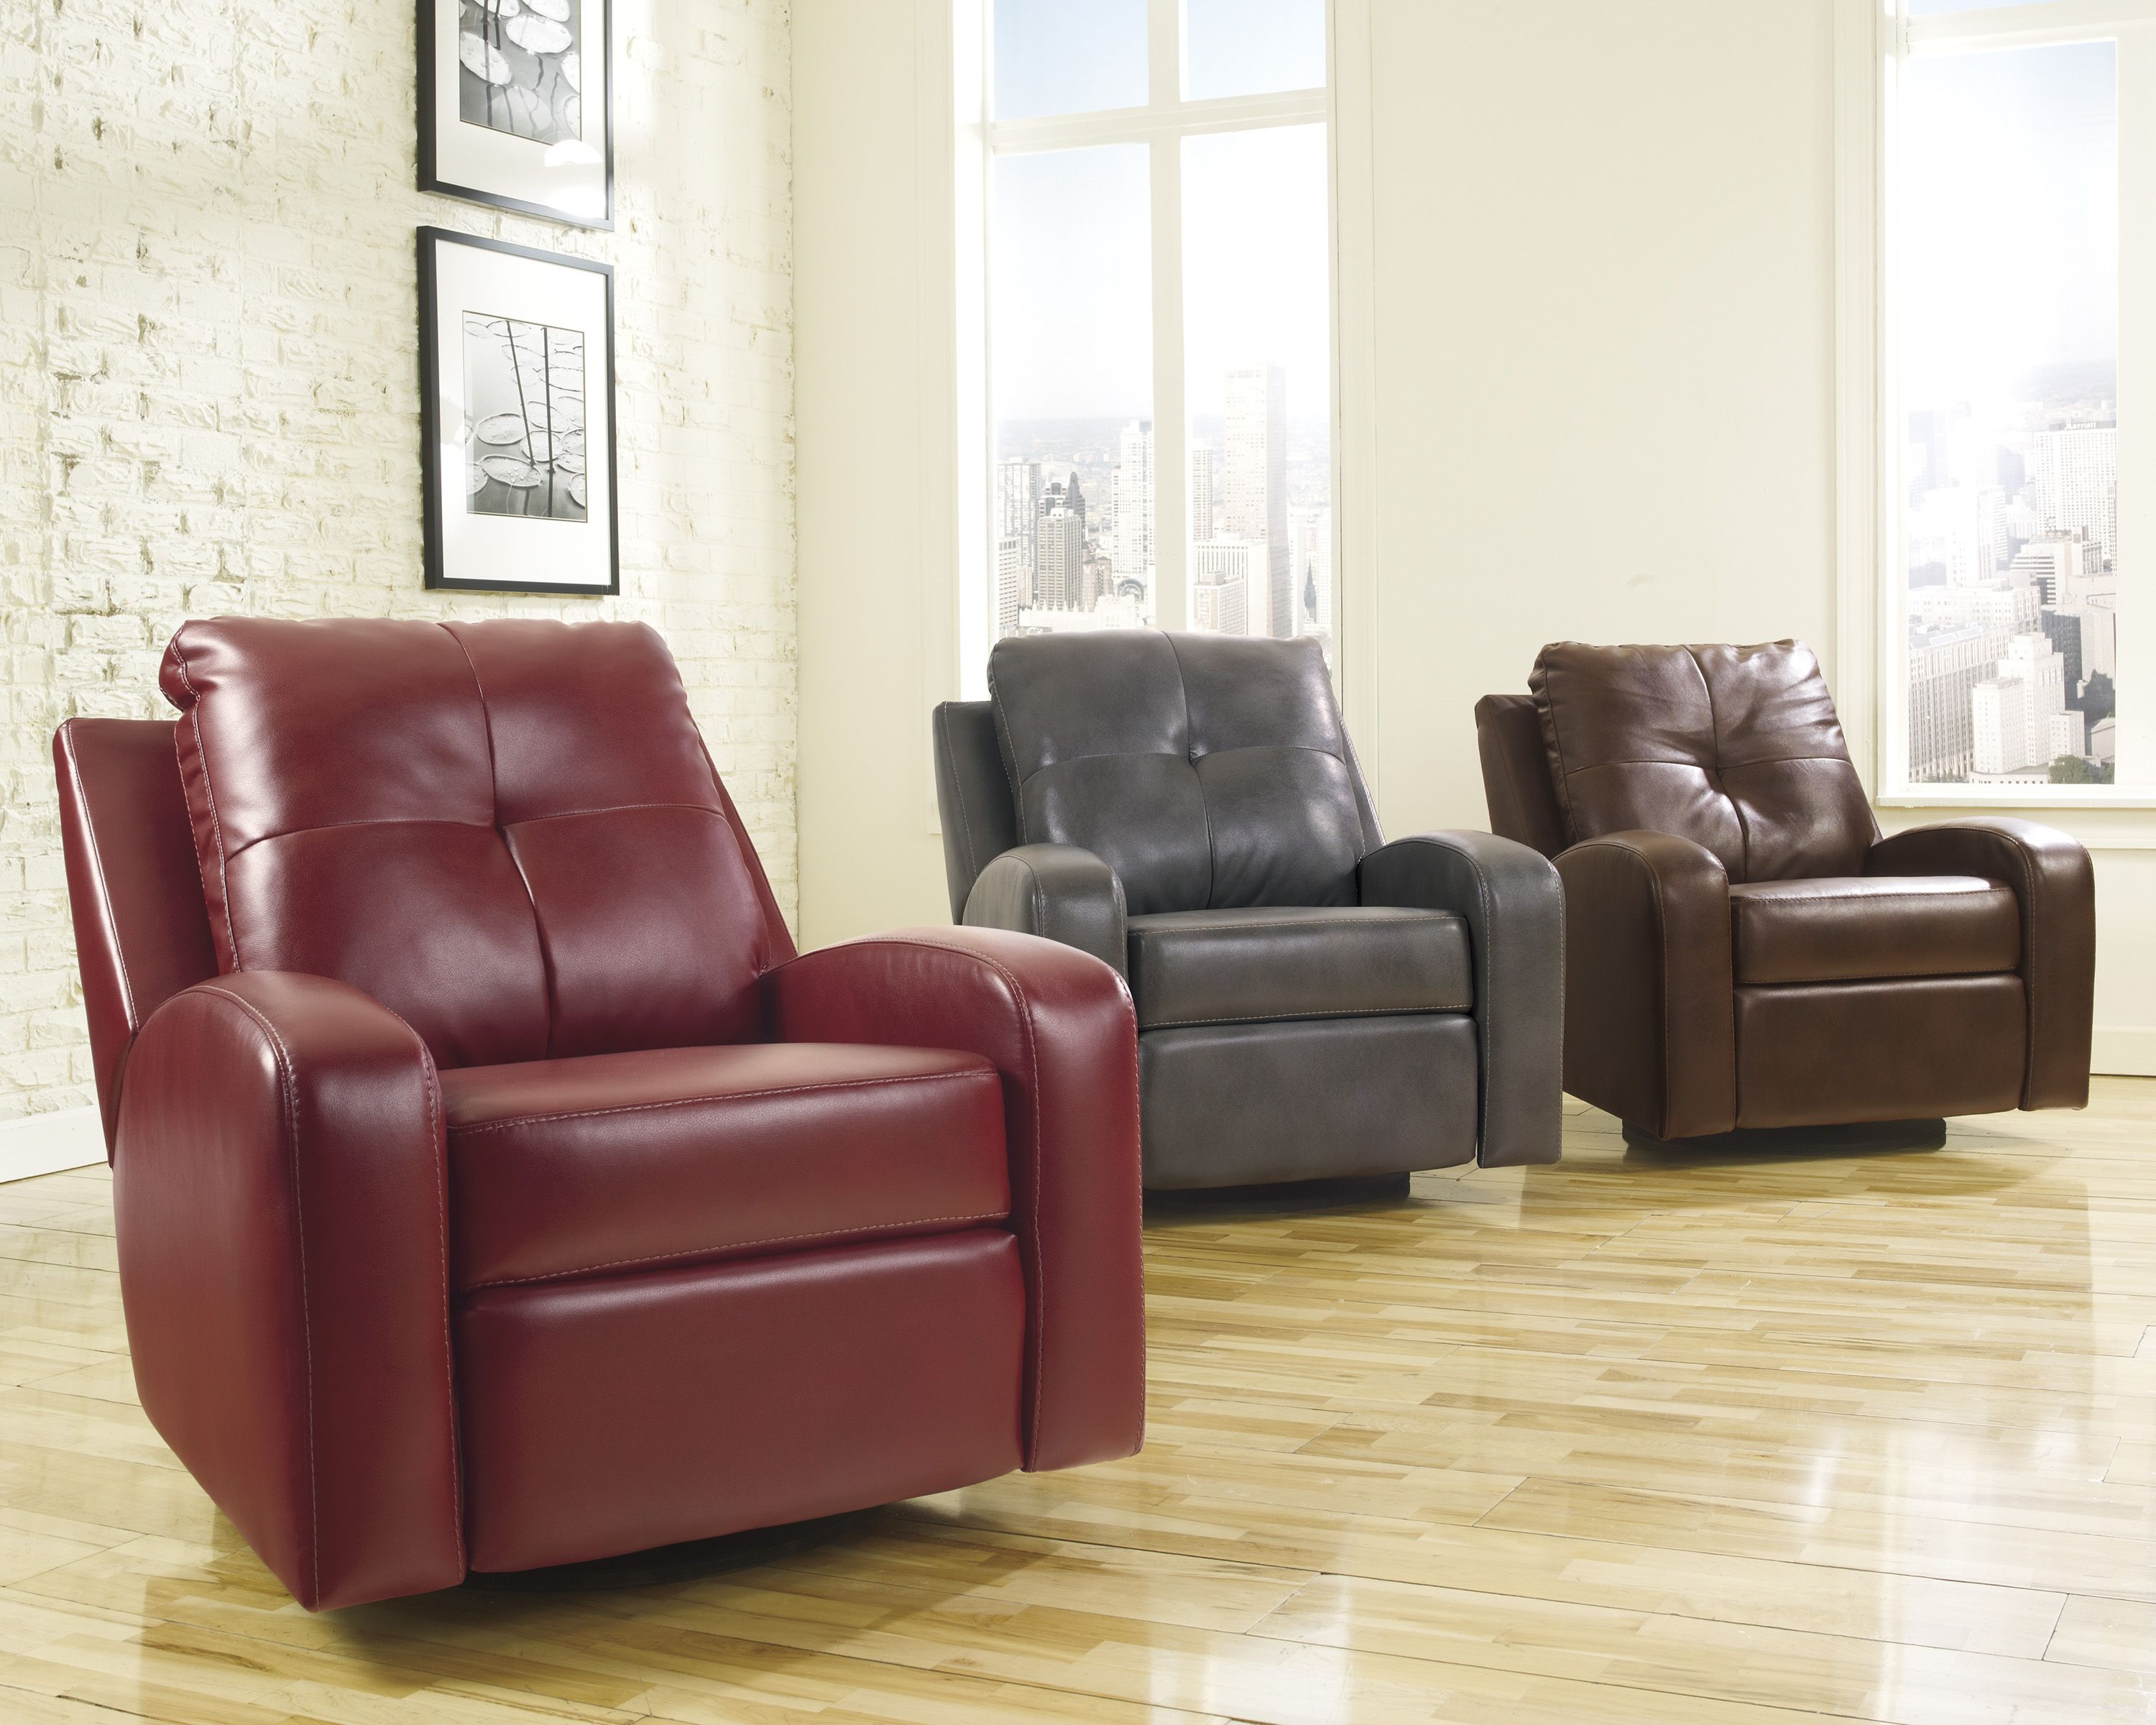 Recliner Free Event